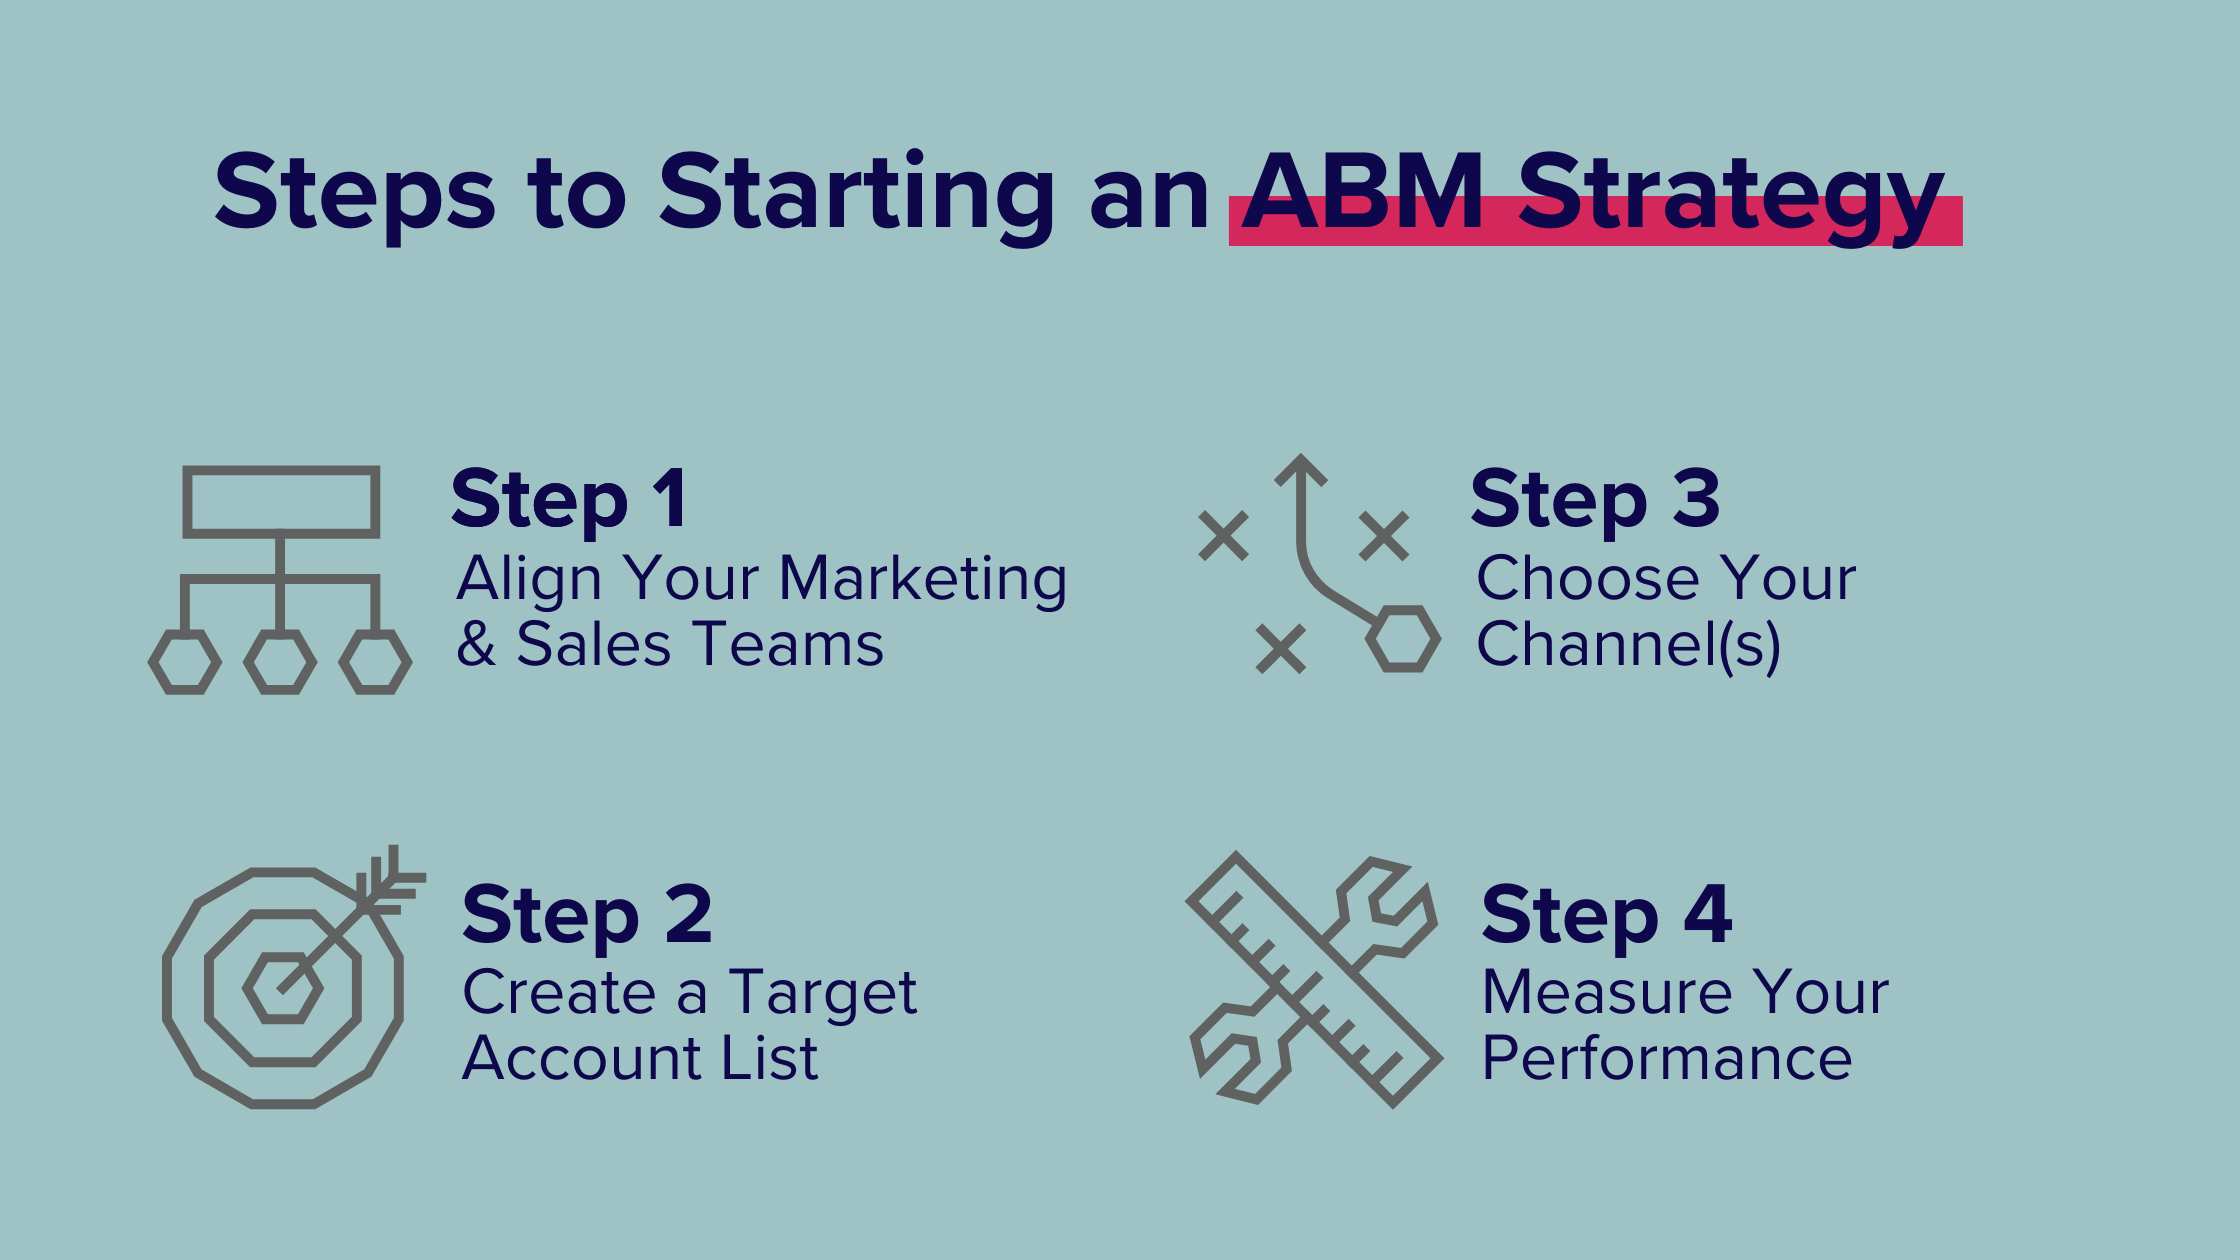 Steps to starting an ABM Strategy infographic: Step 1: Align Your Marketing & Sales Teams, Step 2: Create a Target Account List, Step 3: Choose your channels, Step 4: Measure your performance.